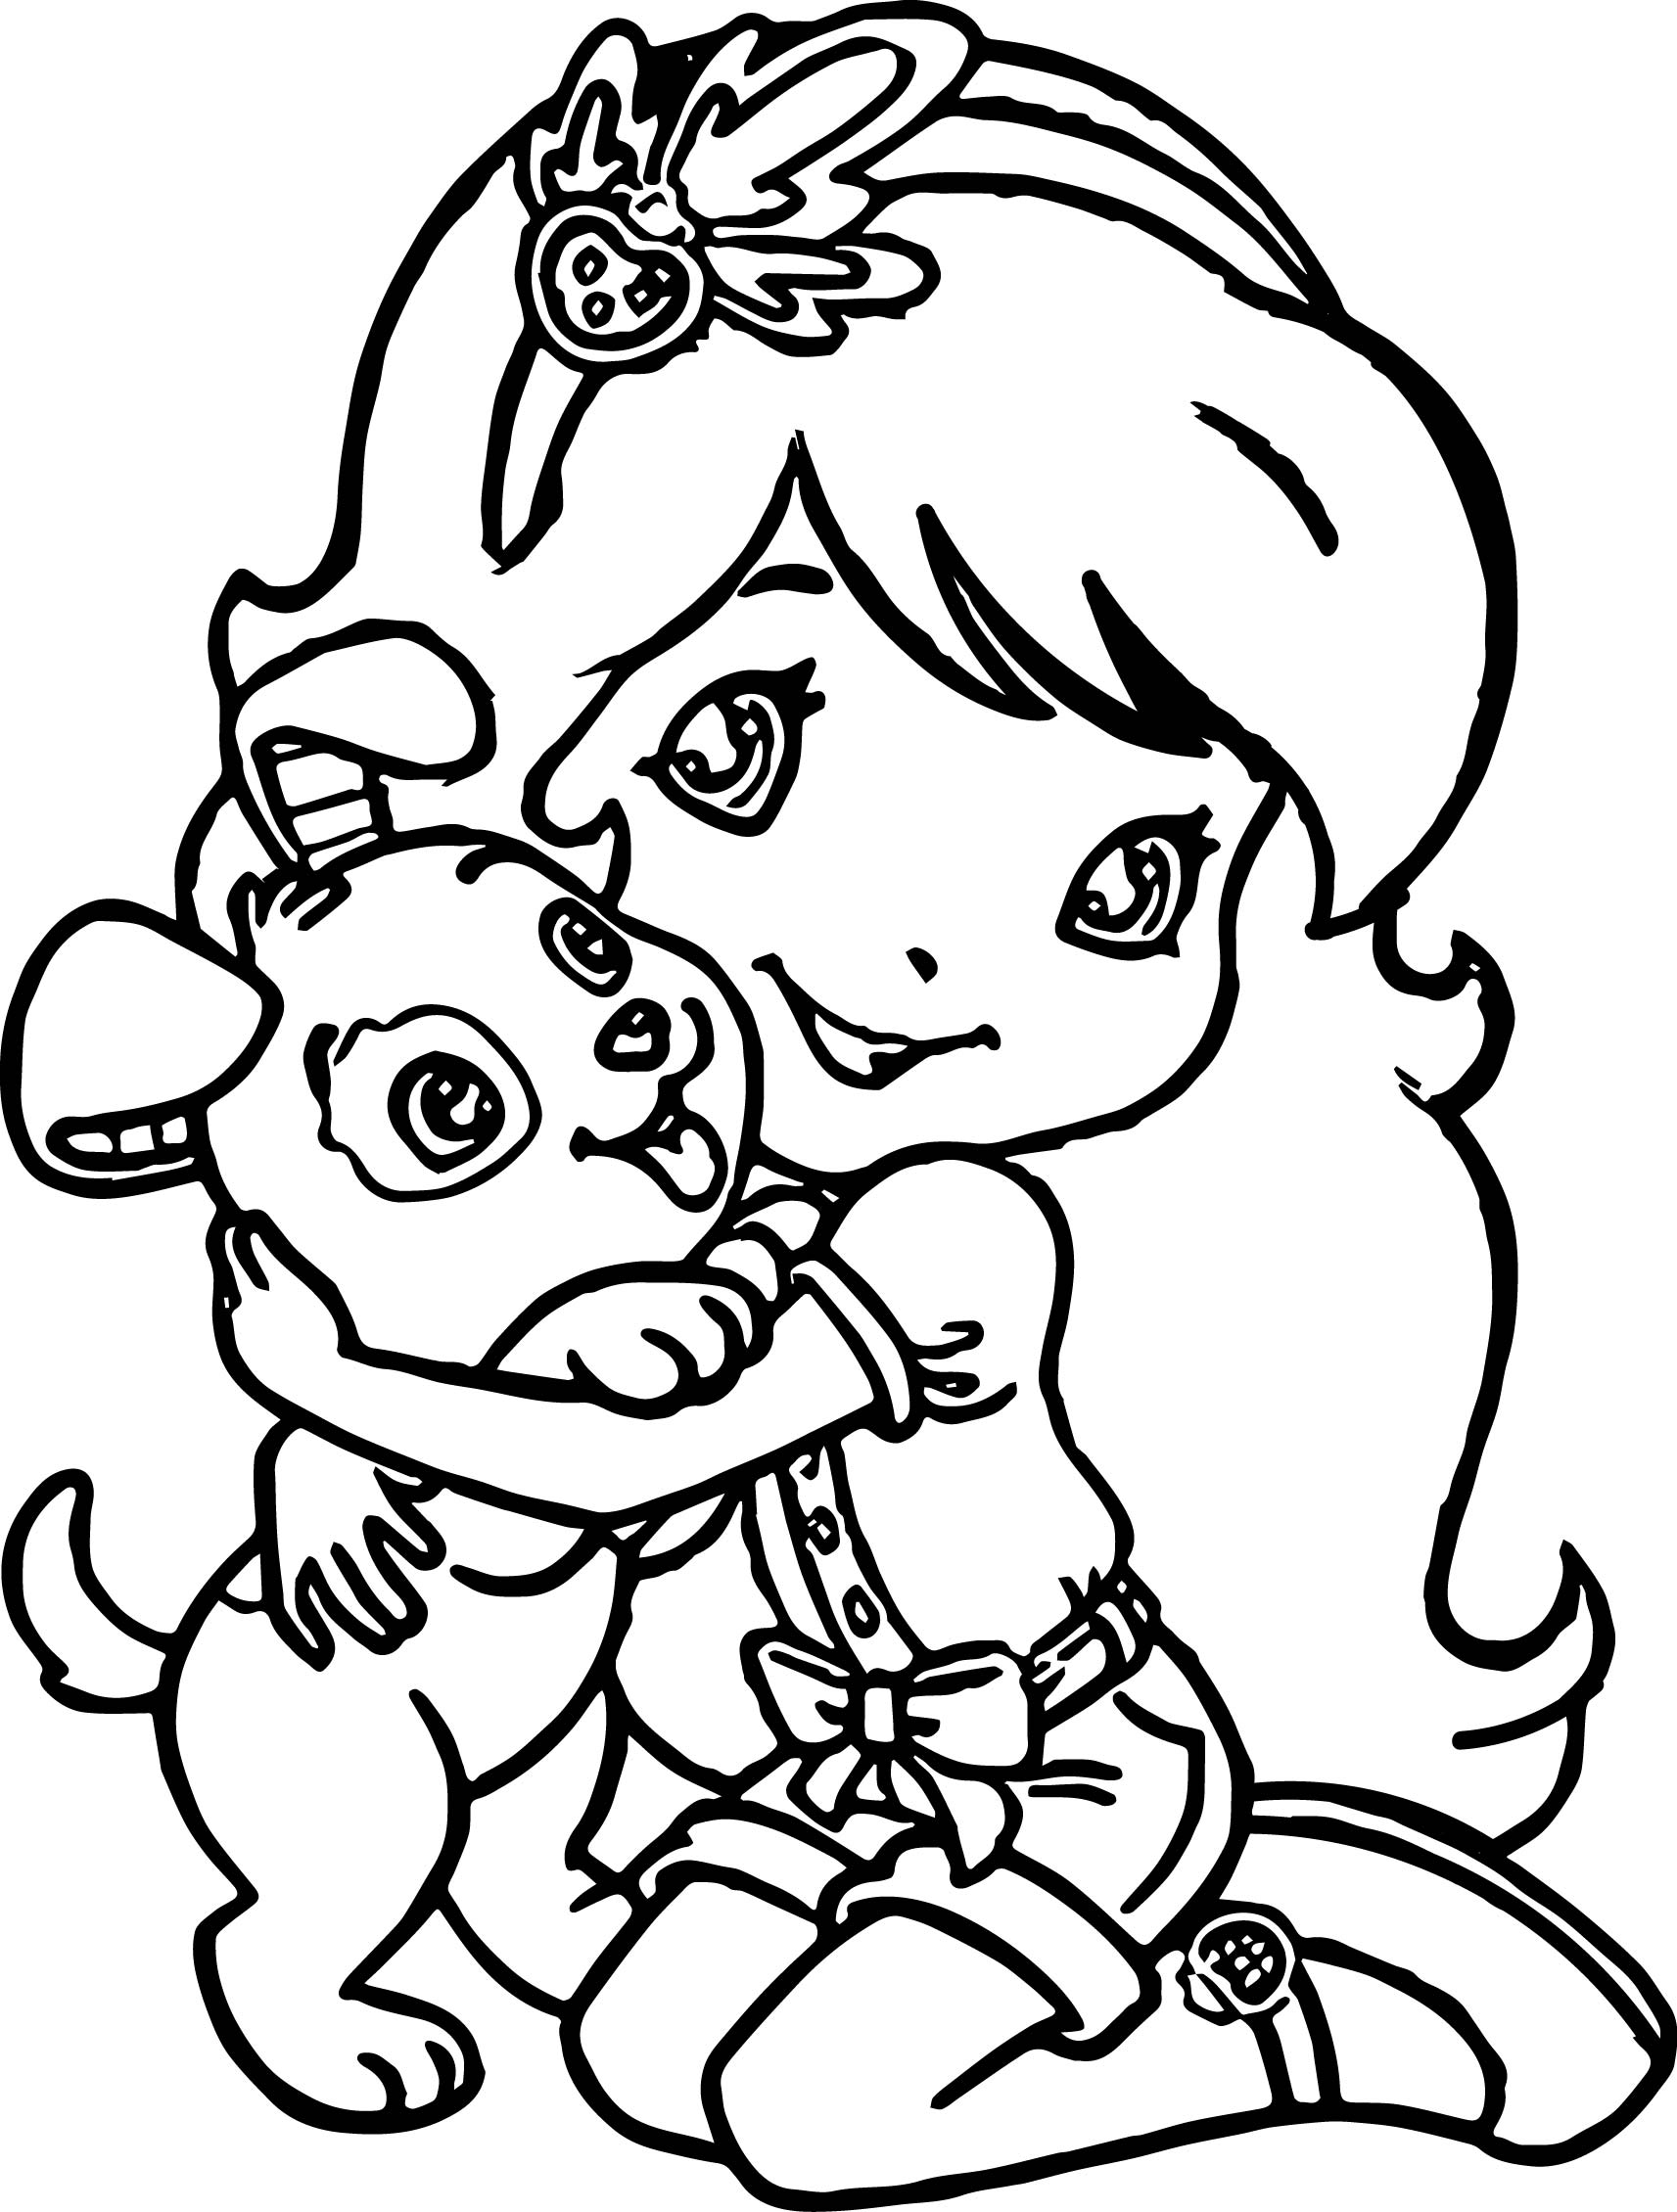 Coloring Pages For Girls 8 And Up